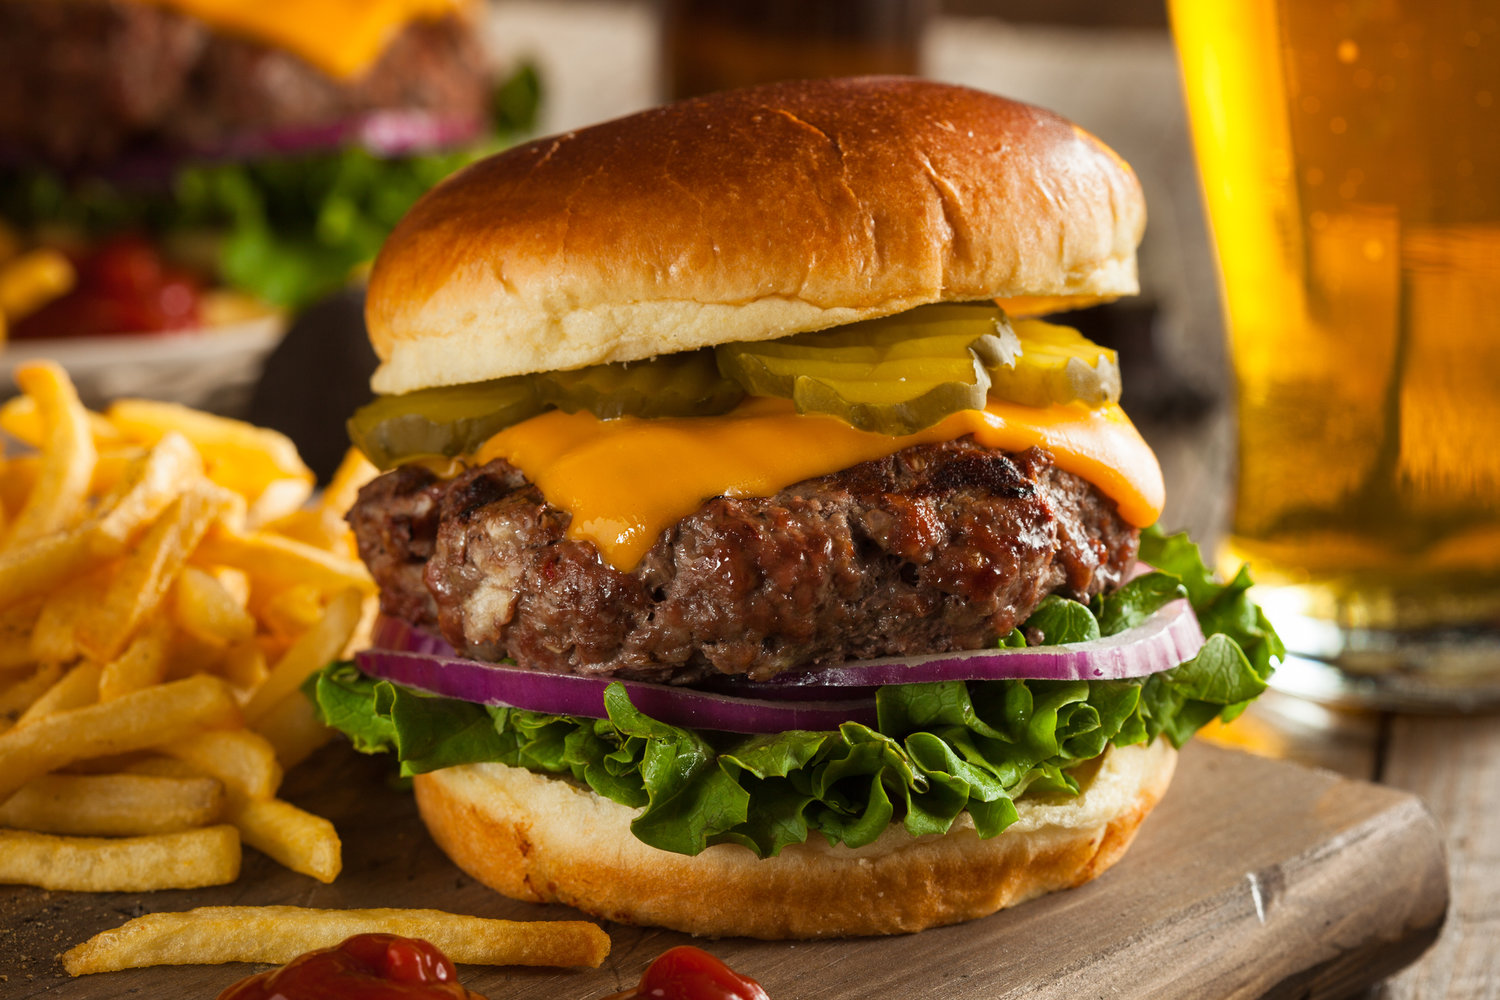 You can get more heart-healthy omega-3s by choosing grass-fed meat like this delicious burger over its industrial counterpart according to the British Journal of Nutrition.